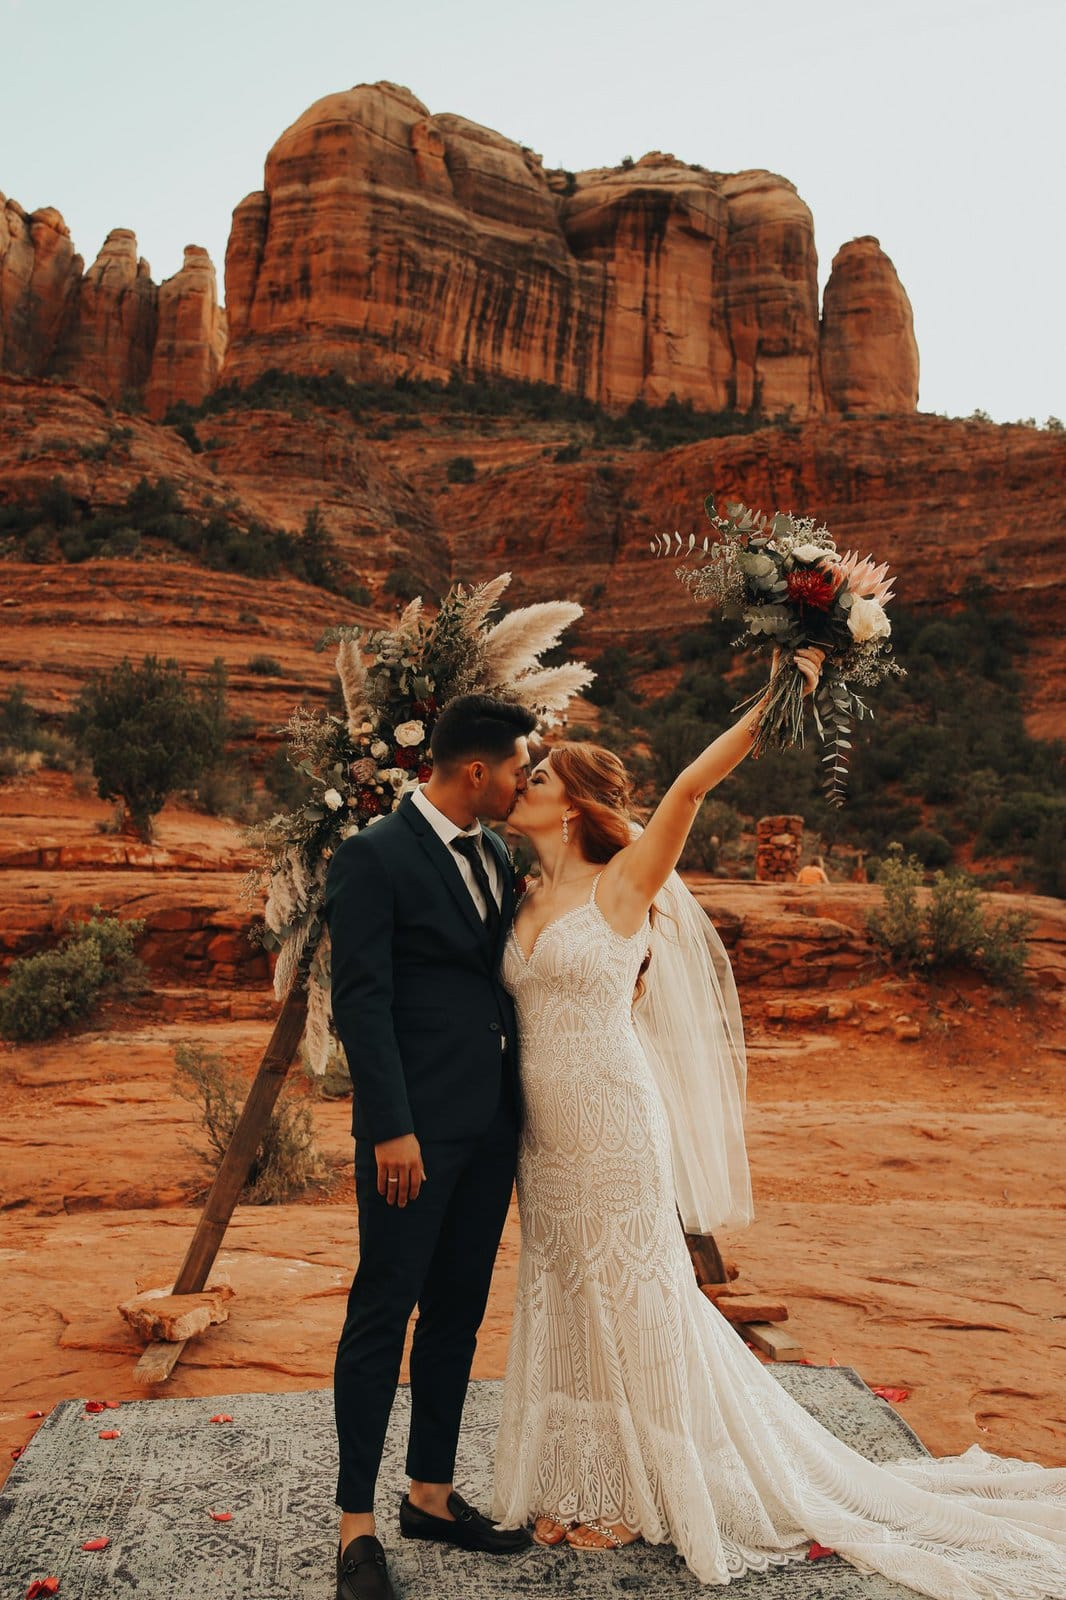 Bride and groom celebrate marriage at Red rock in Sedona.